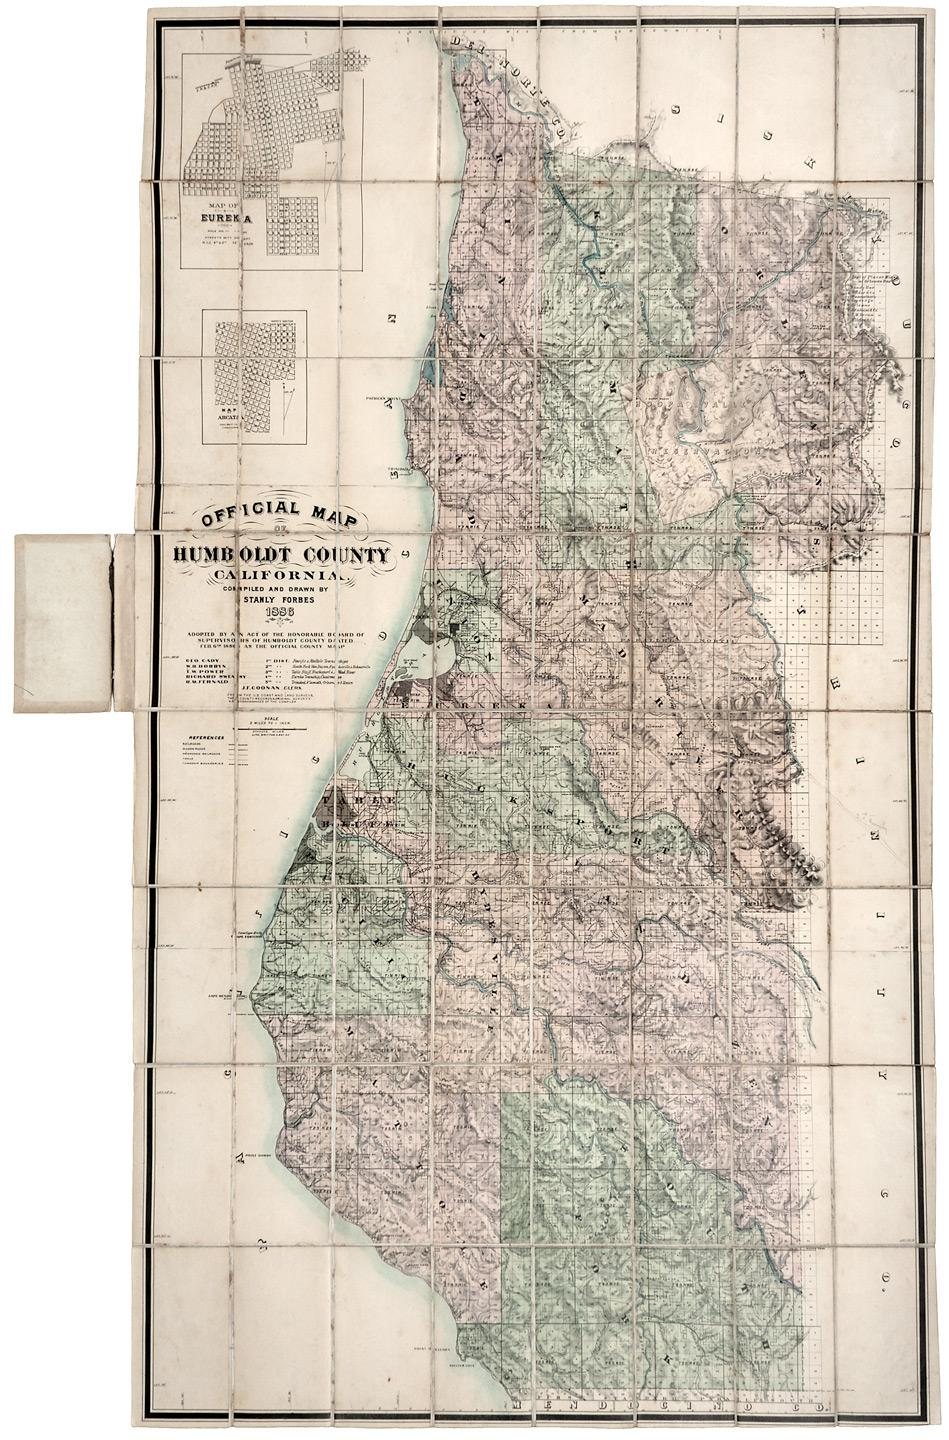 Official Map Of Humboldt County California Compiled And Drawn By